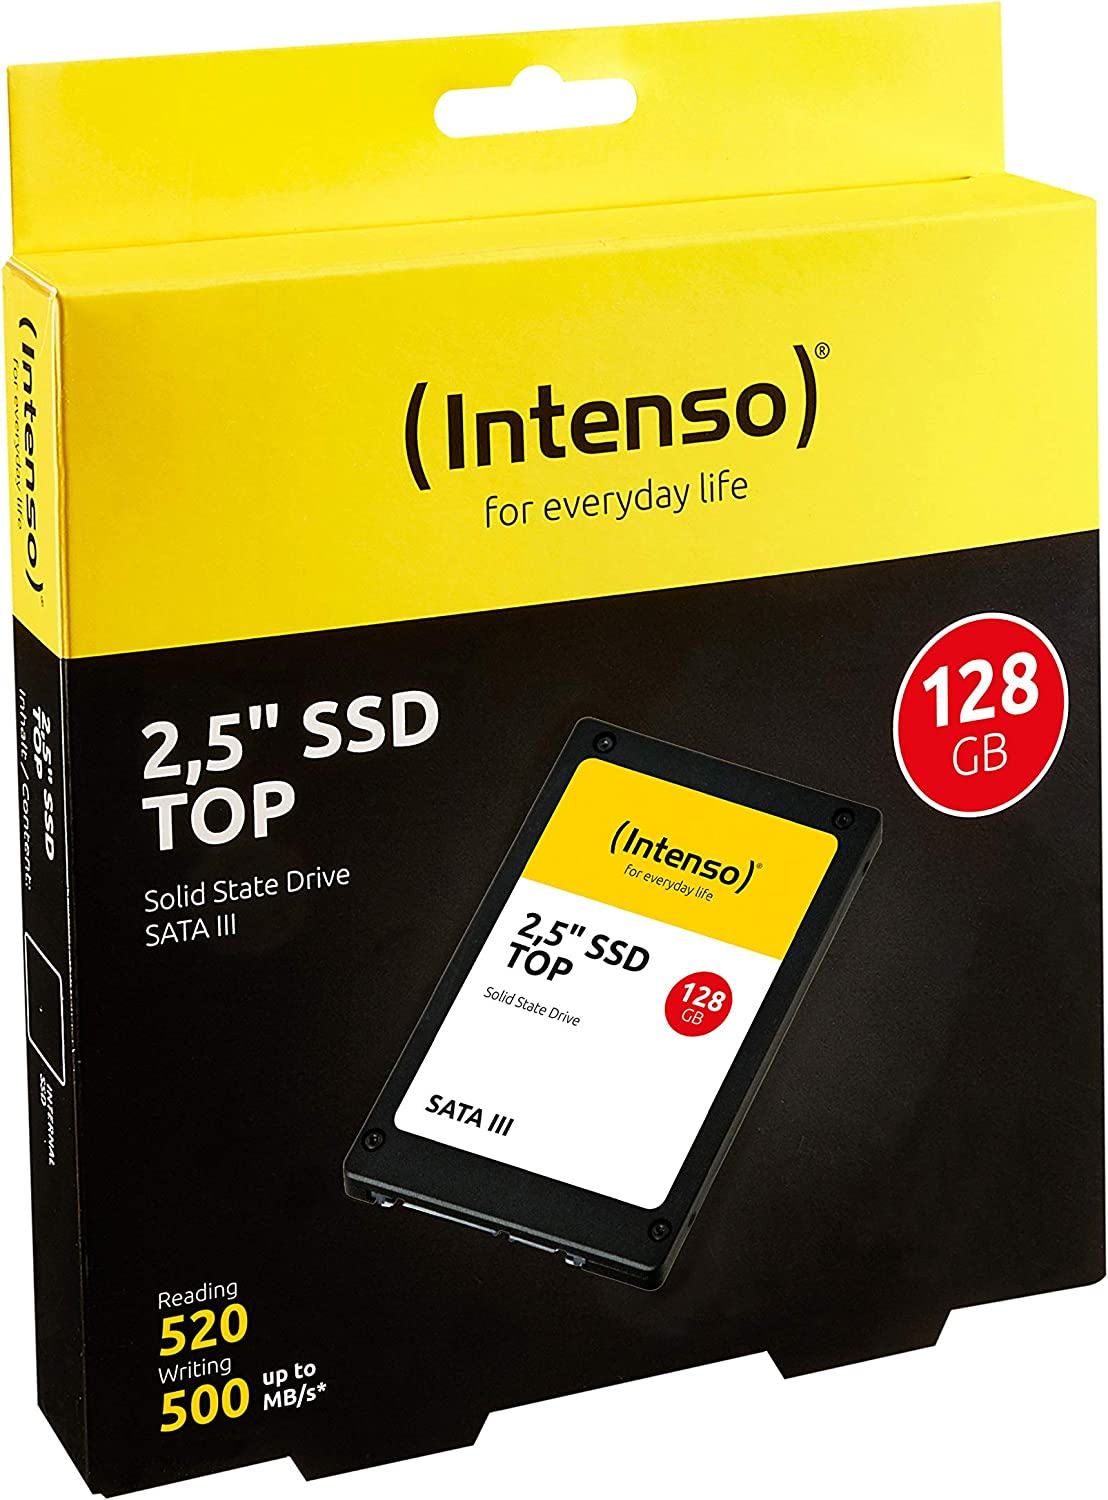 Intenso 3812440 - Disco de estado solido de 256 GB (2.5